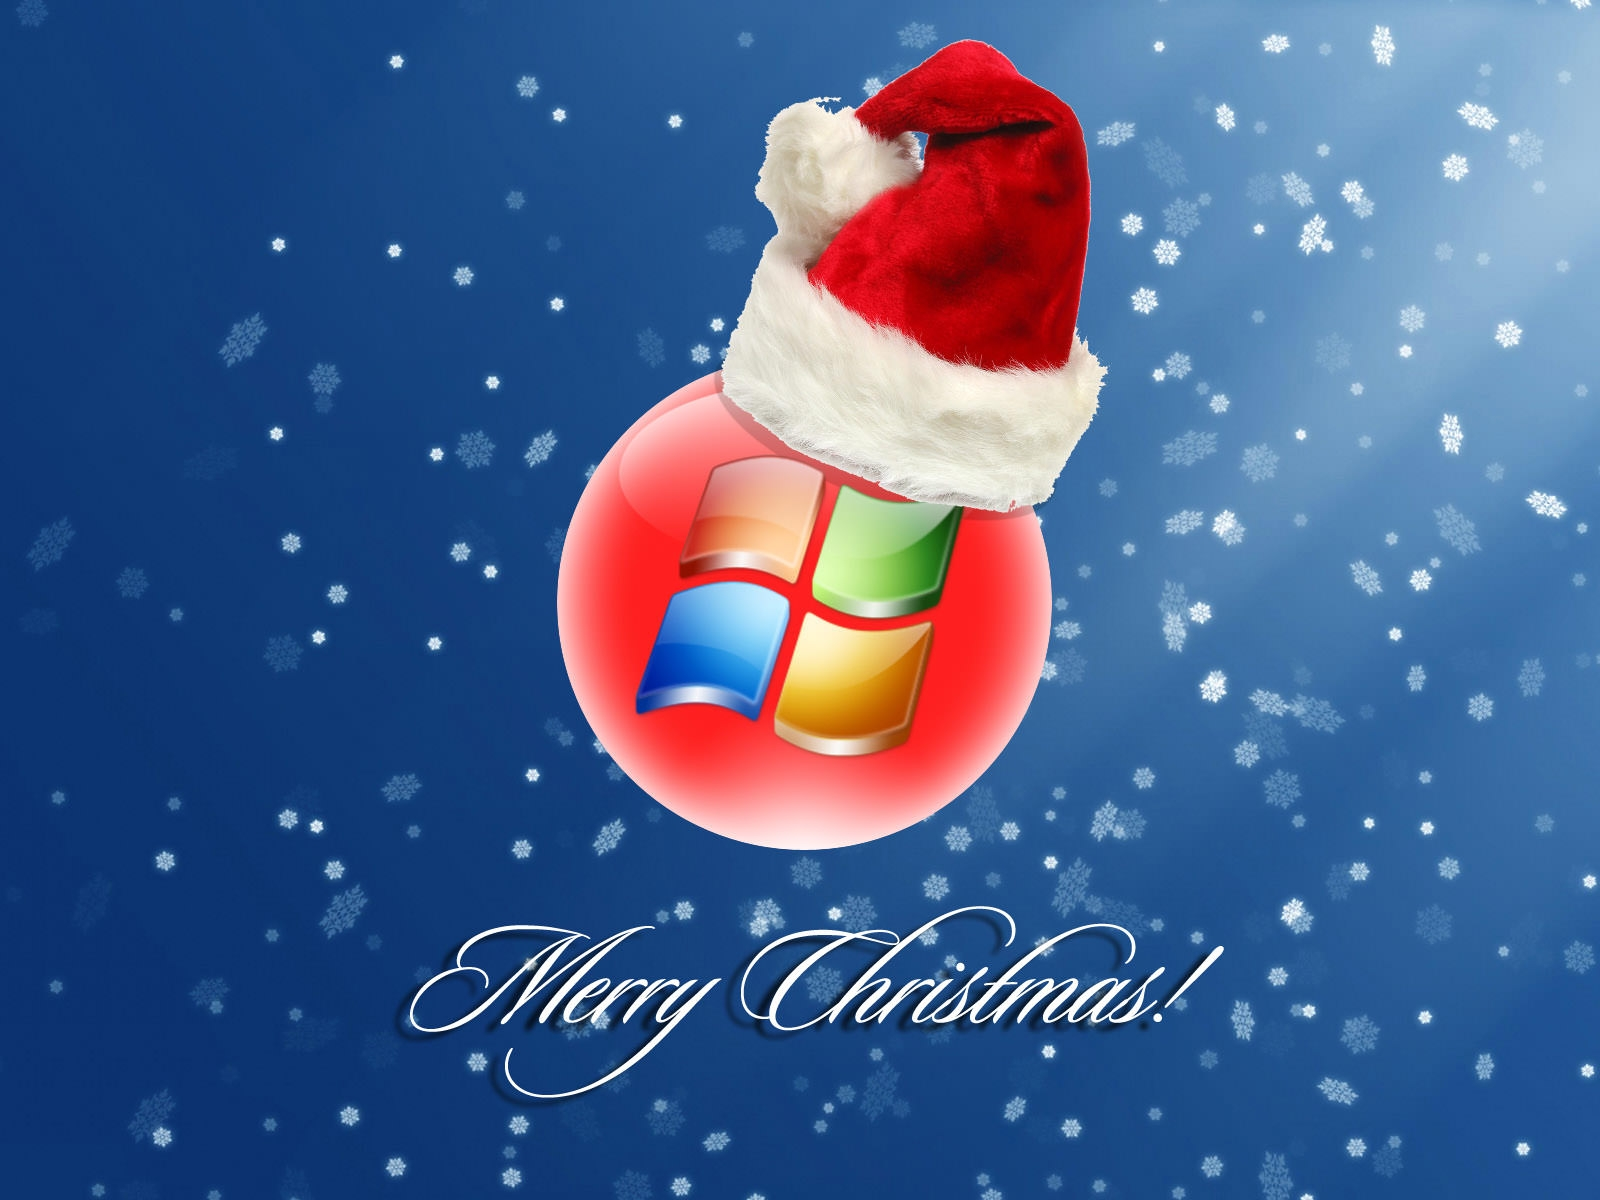 merry-christmas-HD-wallpaper-windows-background